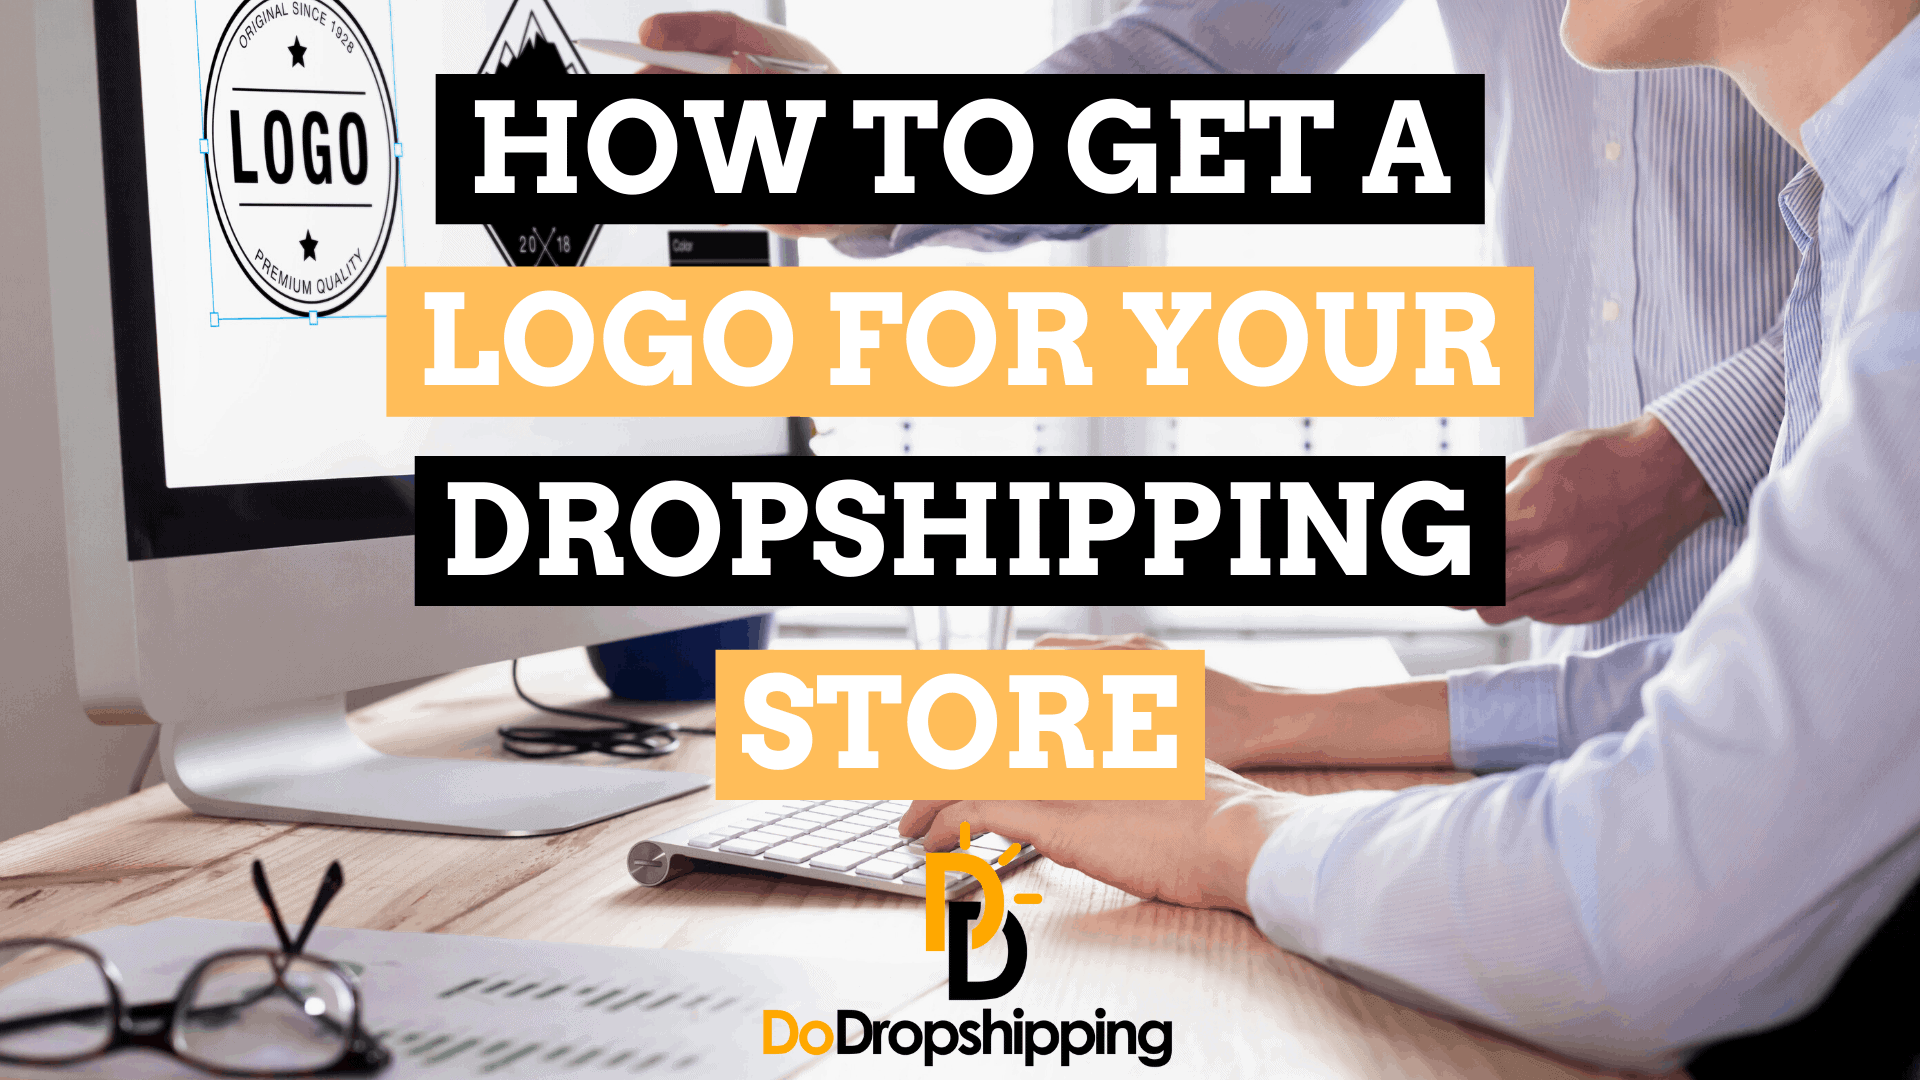 How to Get a Logo for Your Dropshipping Store? (5 Options)